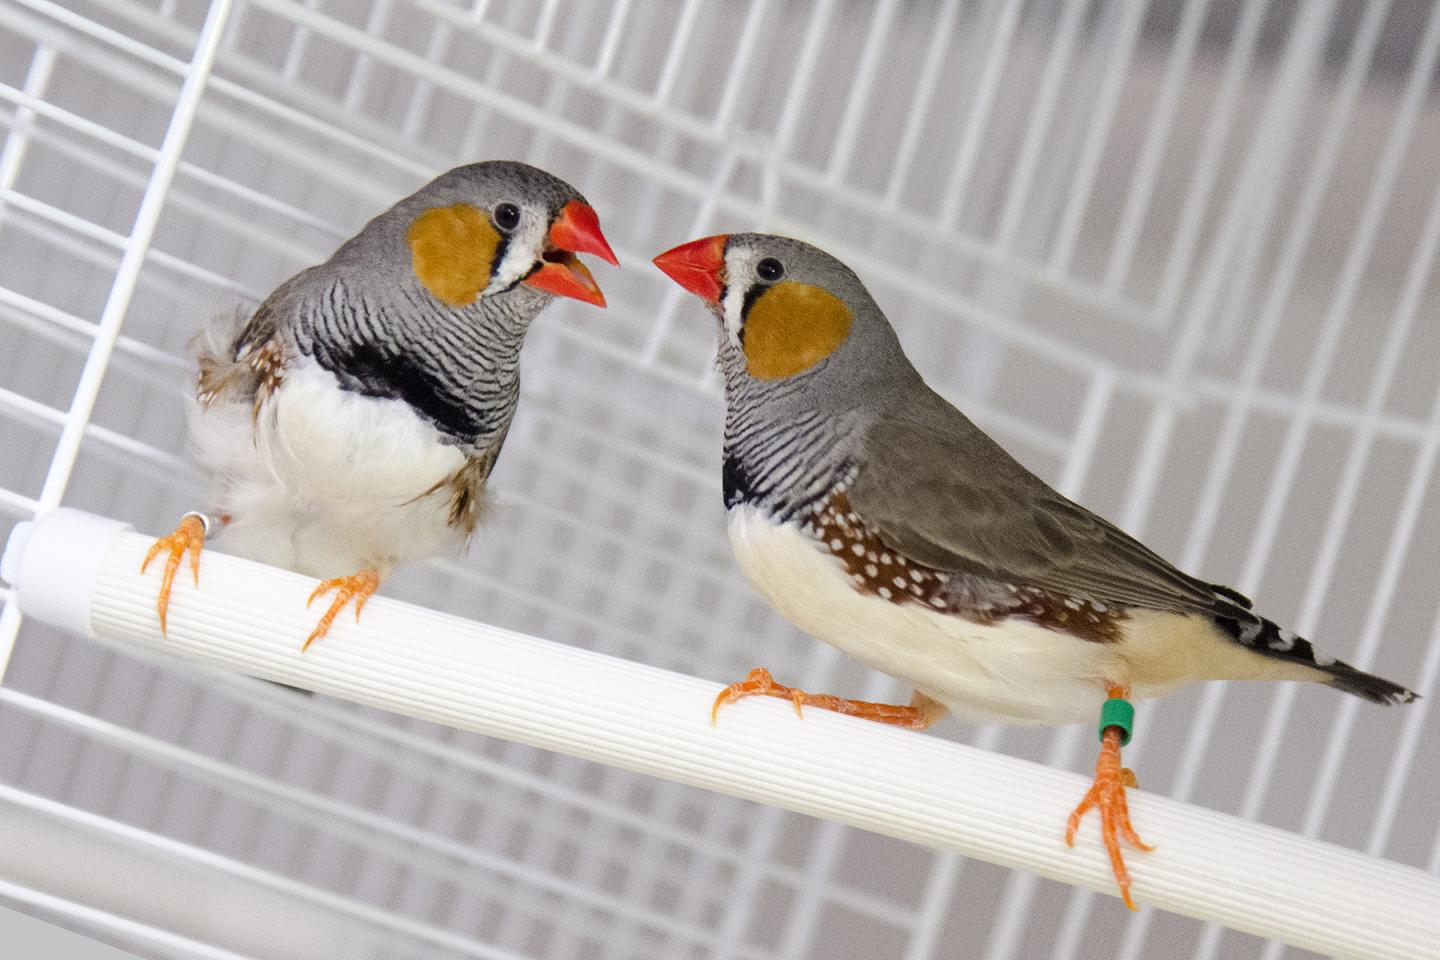 Stress bites! Researchers study mosquito/bird interactions